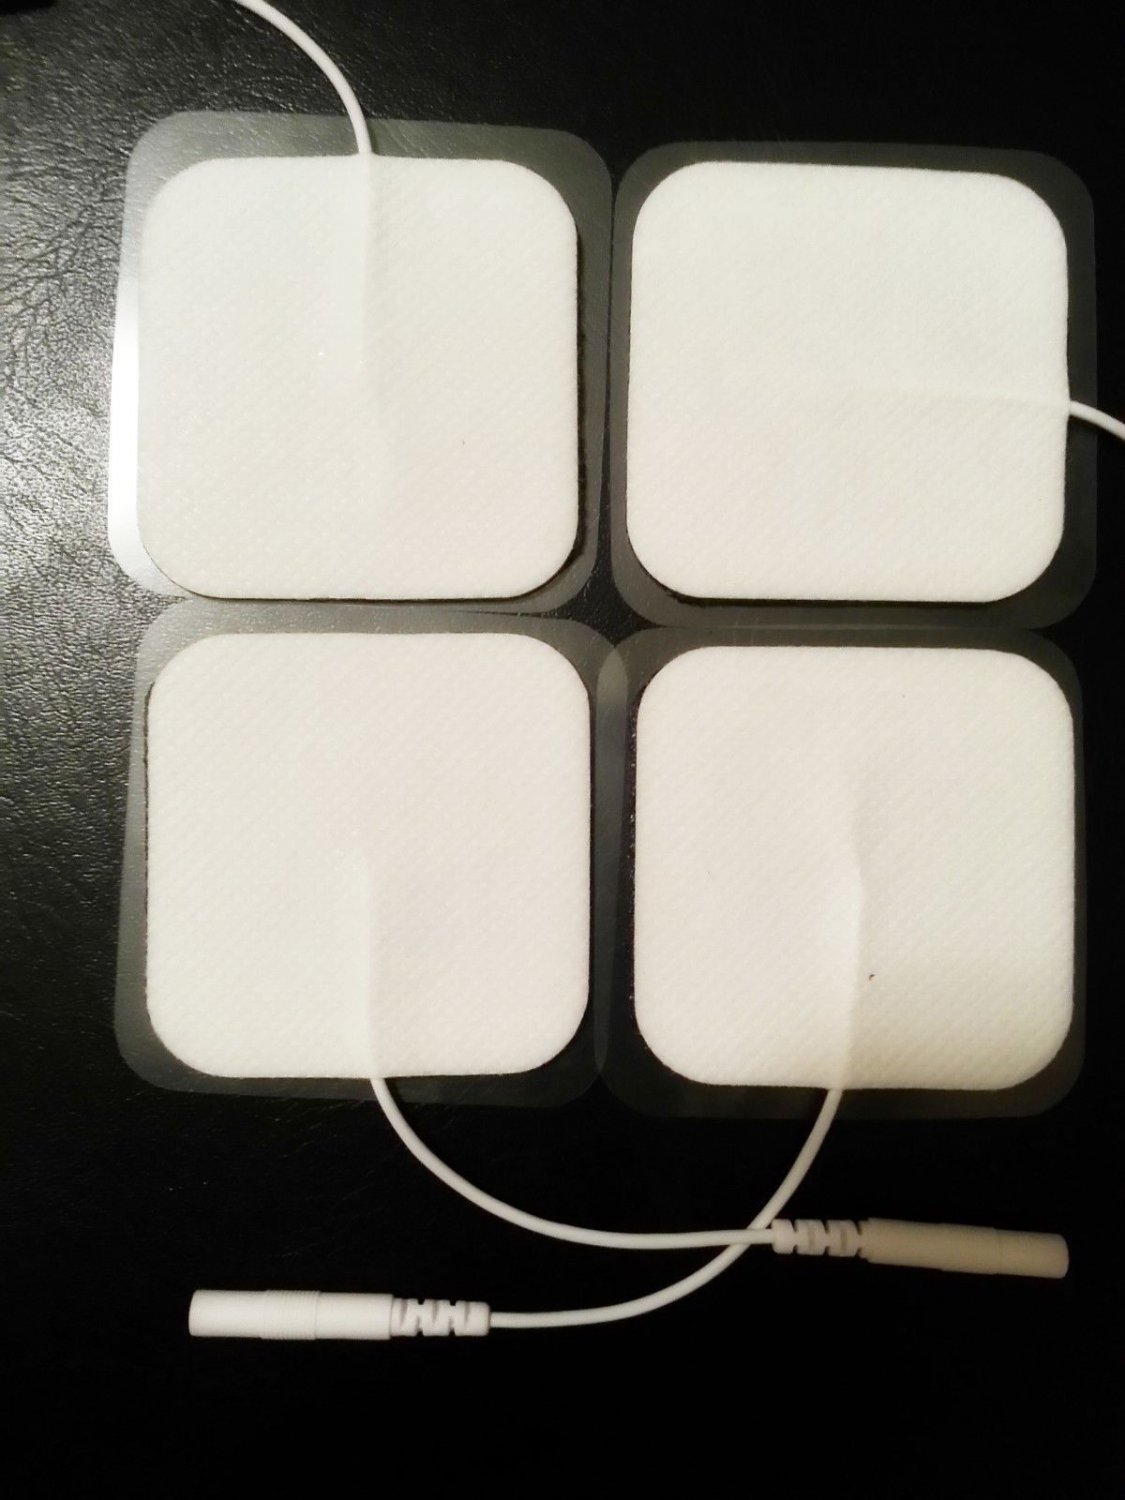 8 PC SQUARE REPLACEMENT ELECTRODE MASSAGE PADS-TENS 2500, 3000, 7000 COMPATIBLE